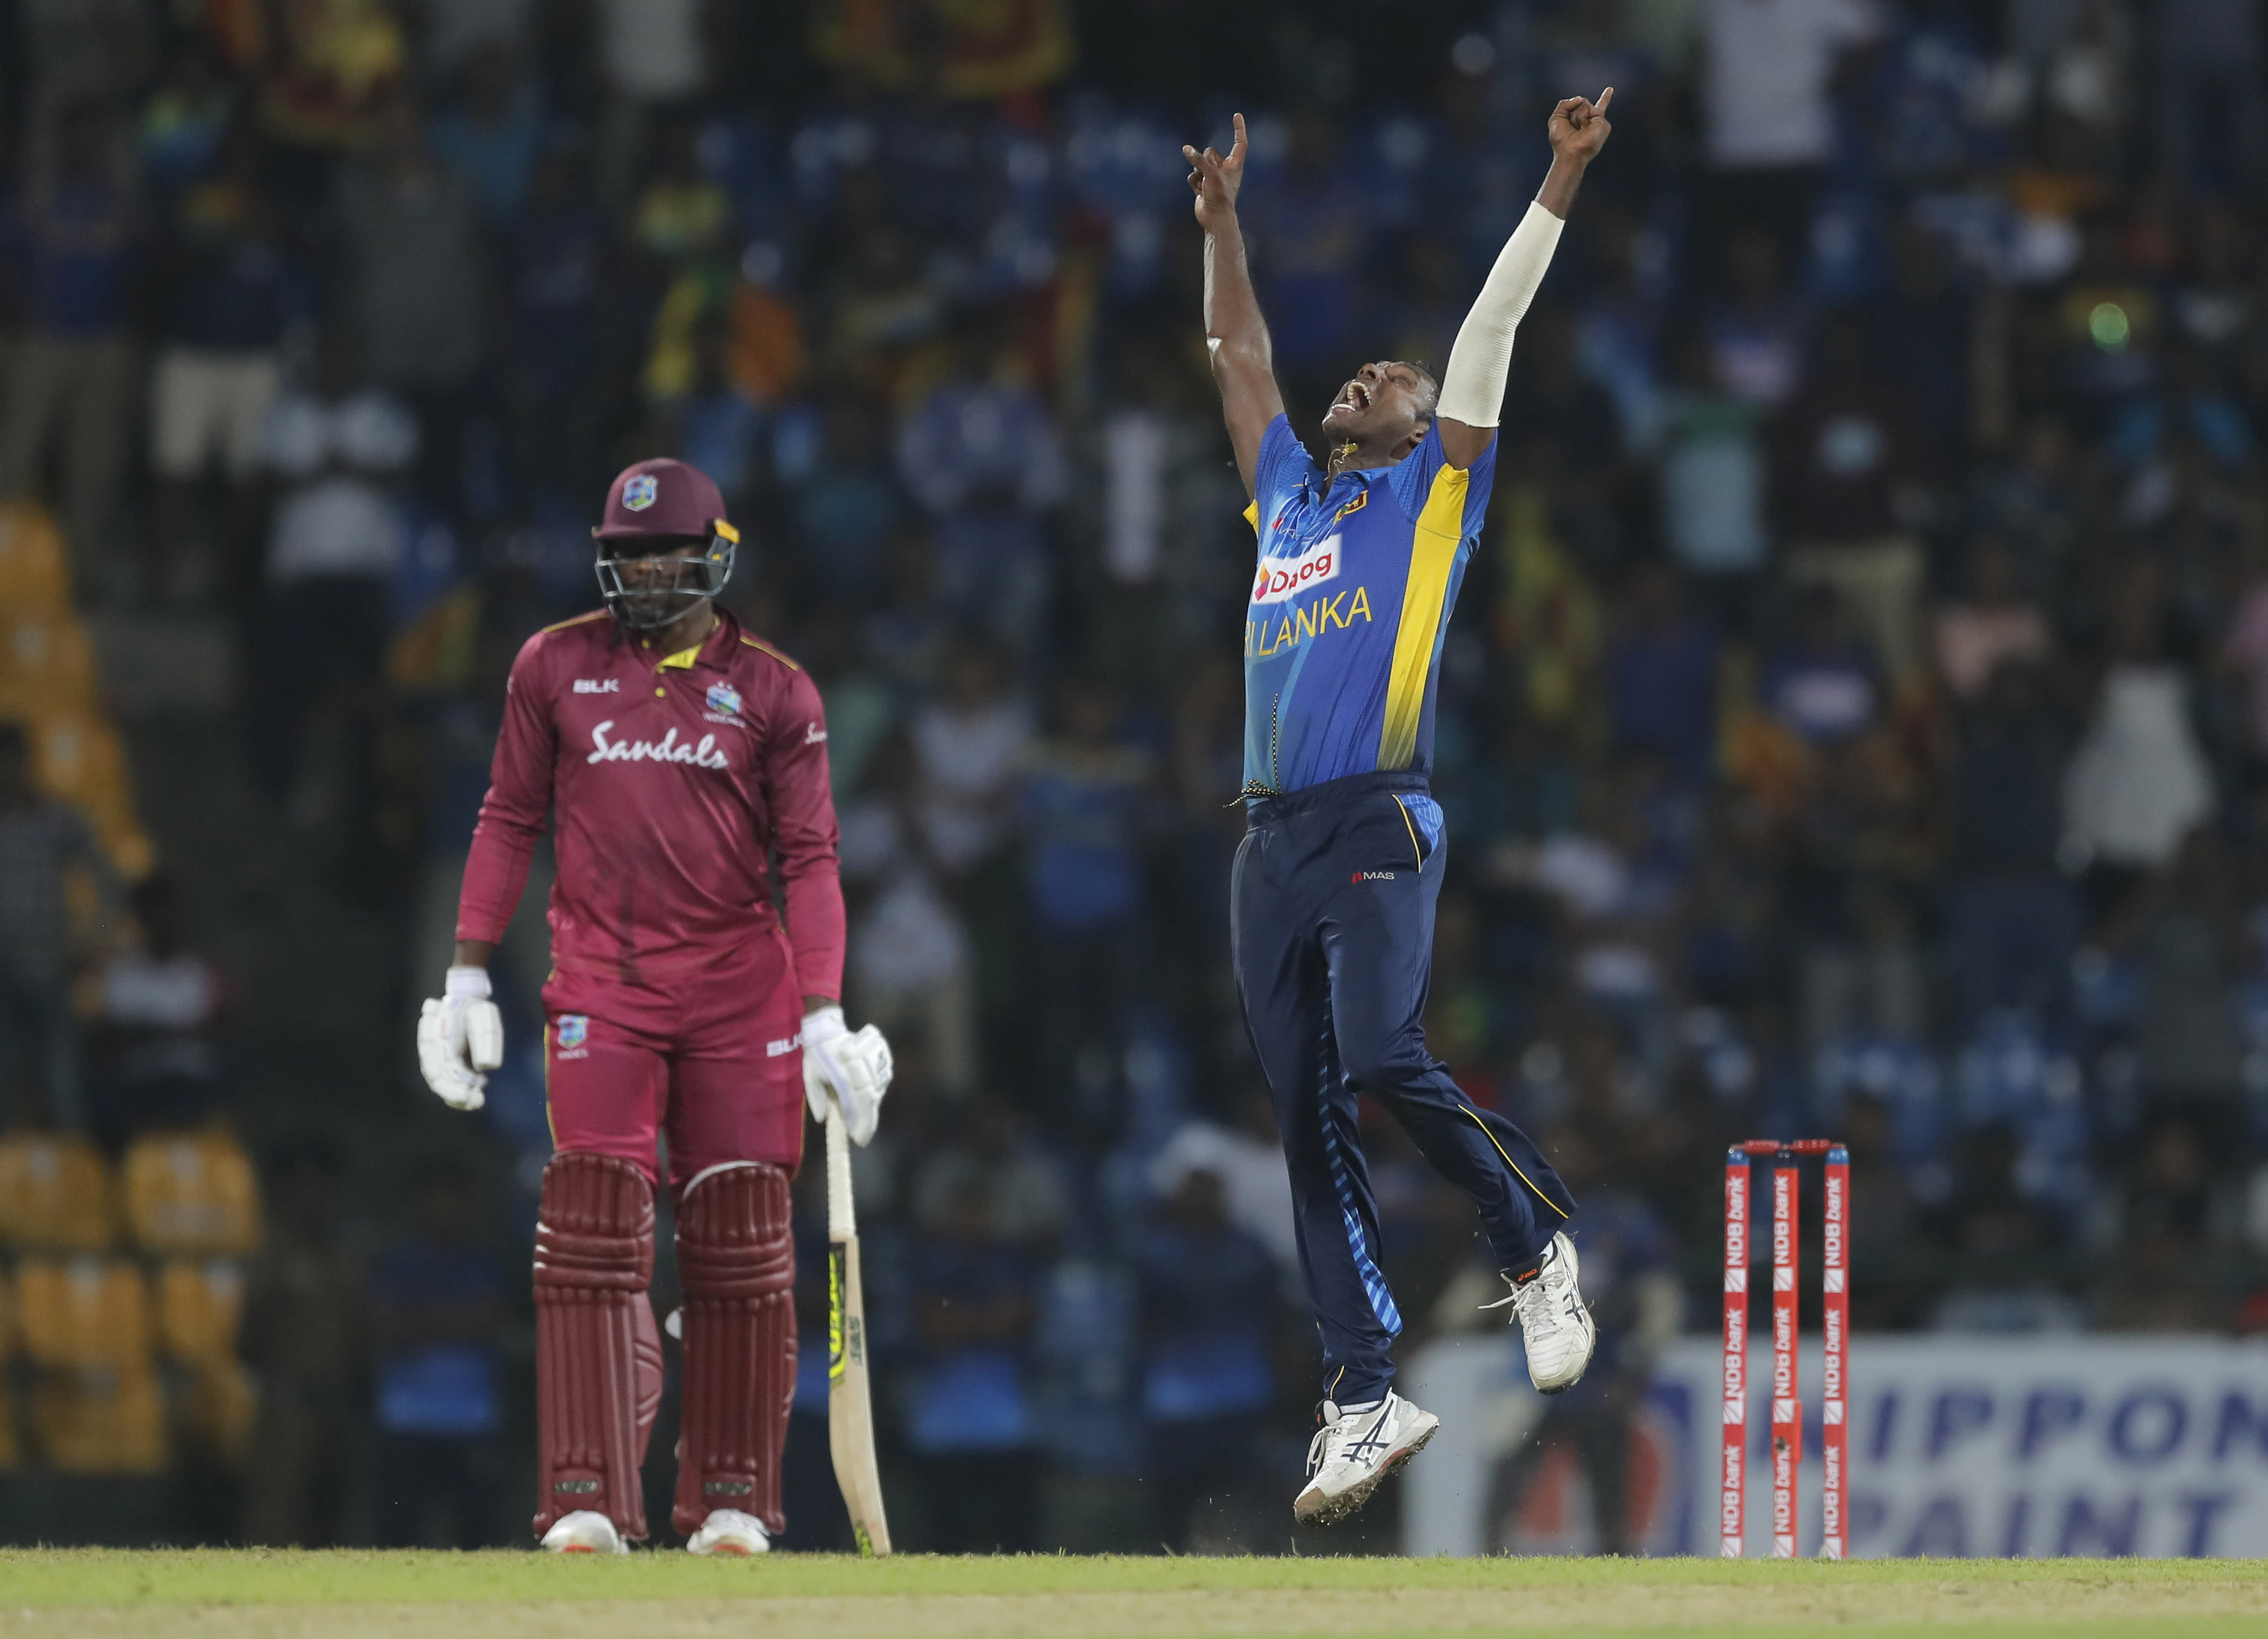 Sri Lanka's Angelo Mathews celebrates his team's six runs victory over West Indies in the third one day international cricket match as Sheldon Cottrell watches in Pallekele, Sri Lanka, Sunday, March 1, 2020. (AP Photo/Eranga Jayawardena)